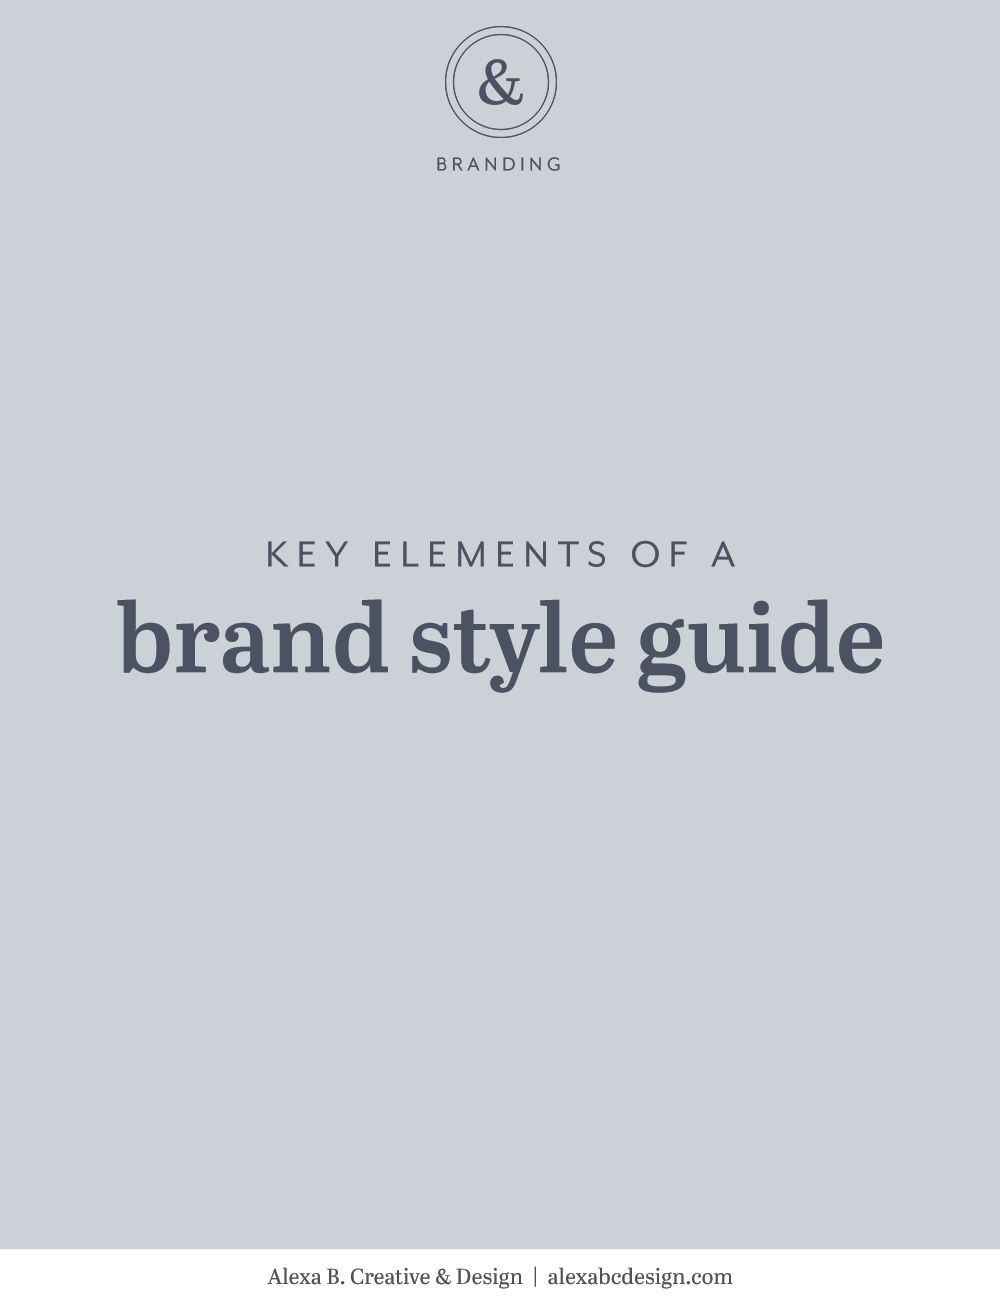 Key elements of a brand style guide to keep your brand consistent